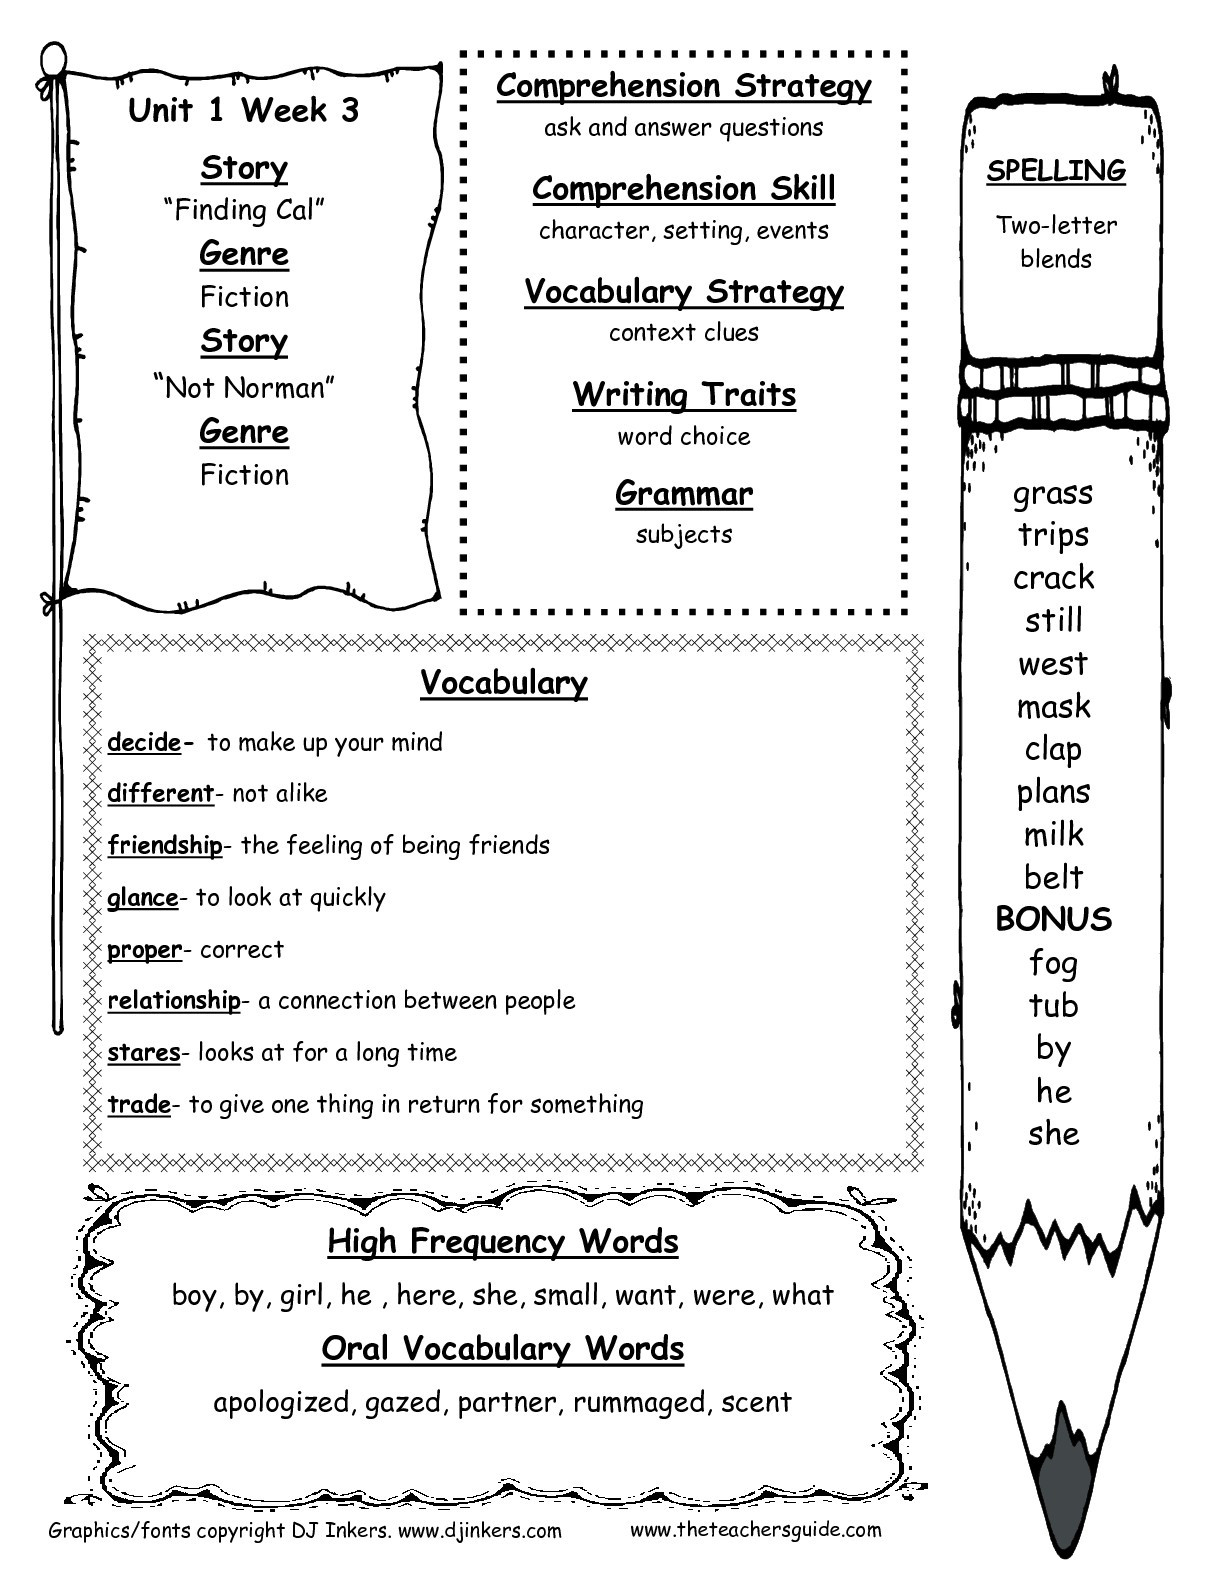 Second Grade Spelling Worksheets Mcgraw Hill Wonders Second Grade Resources and Printouts